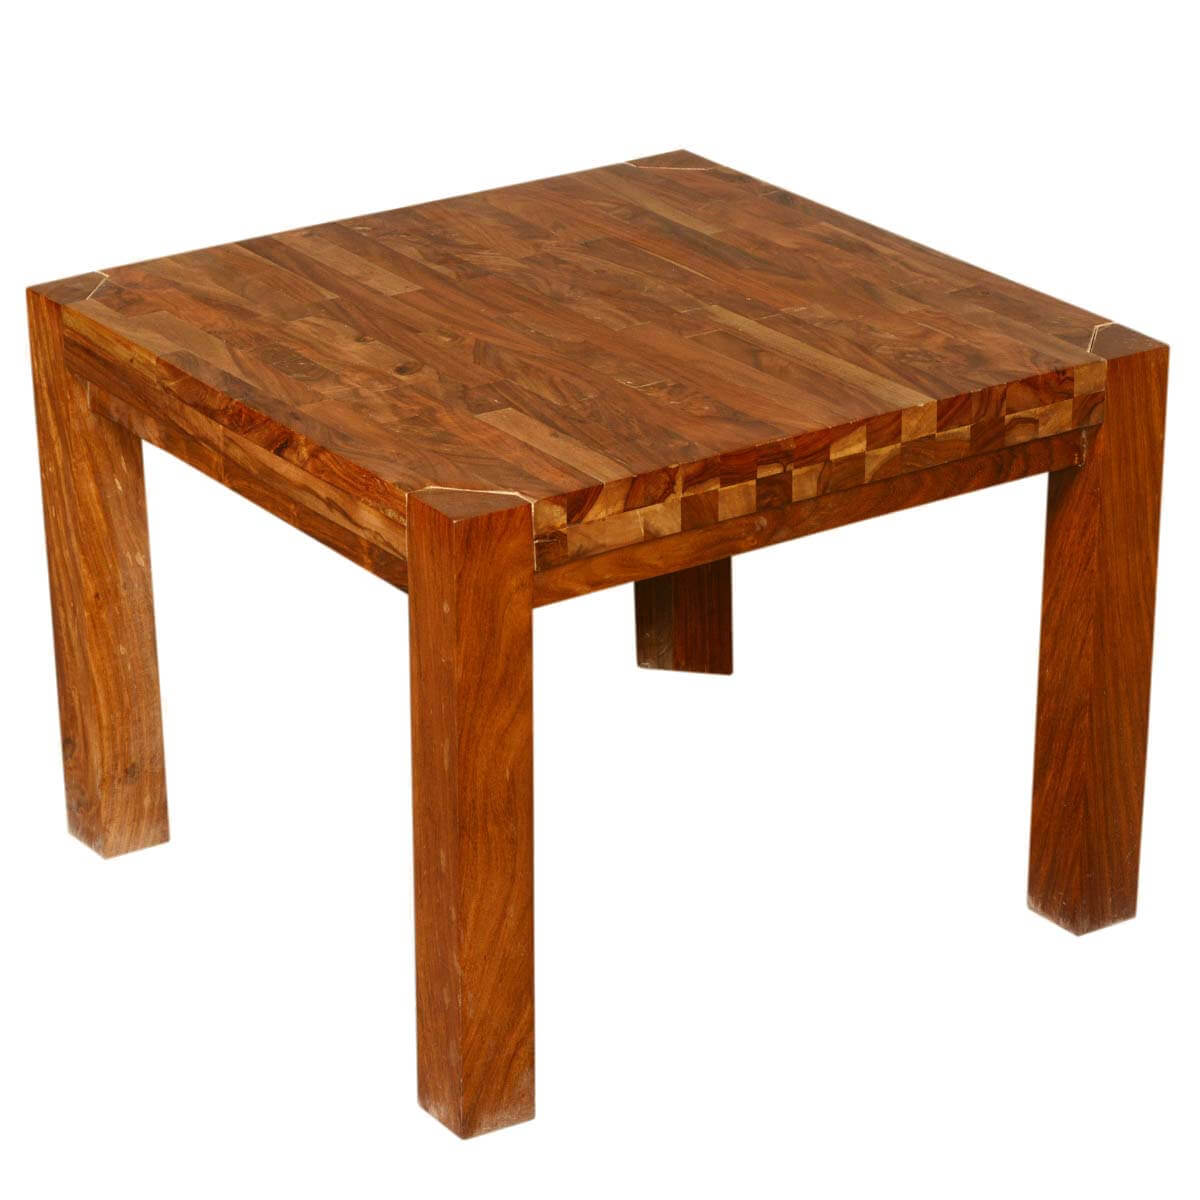 Reclaimed Wood End Tables ~ Princeton reclaimed wood square accent end table